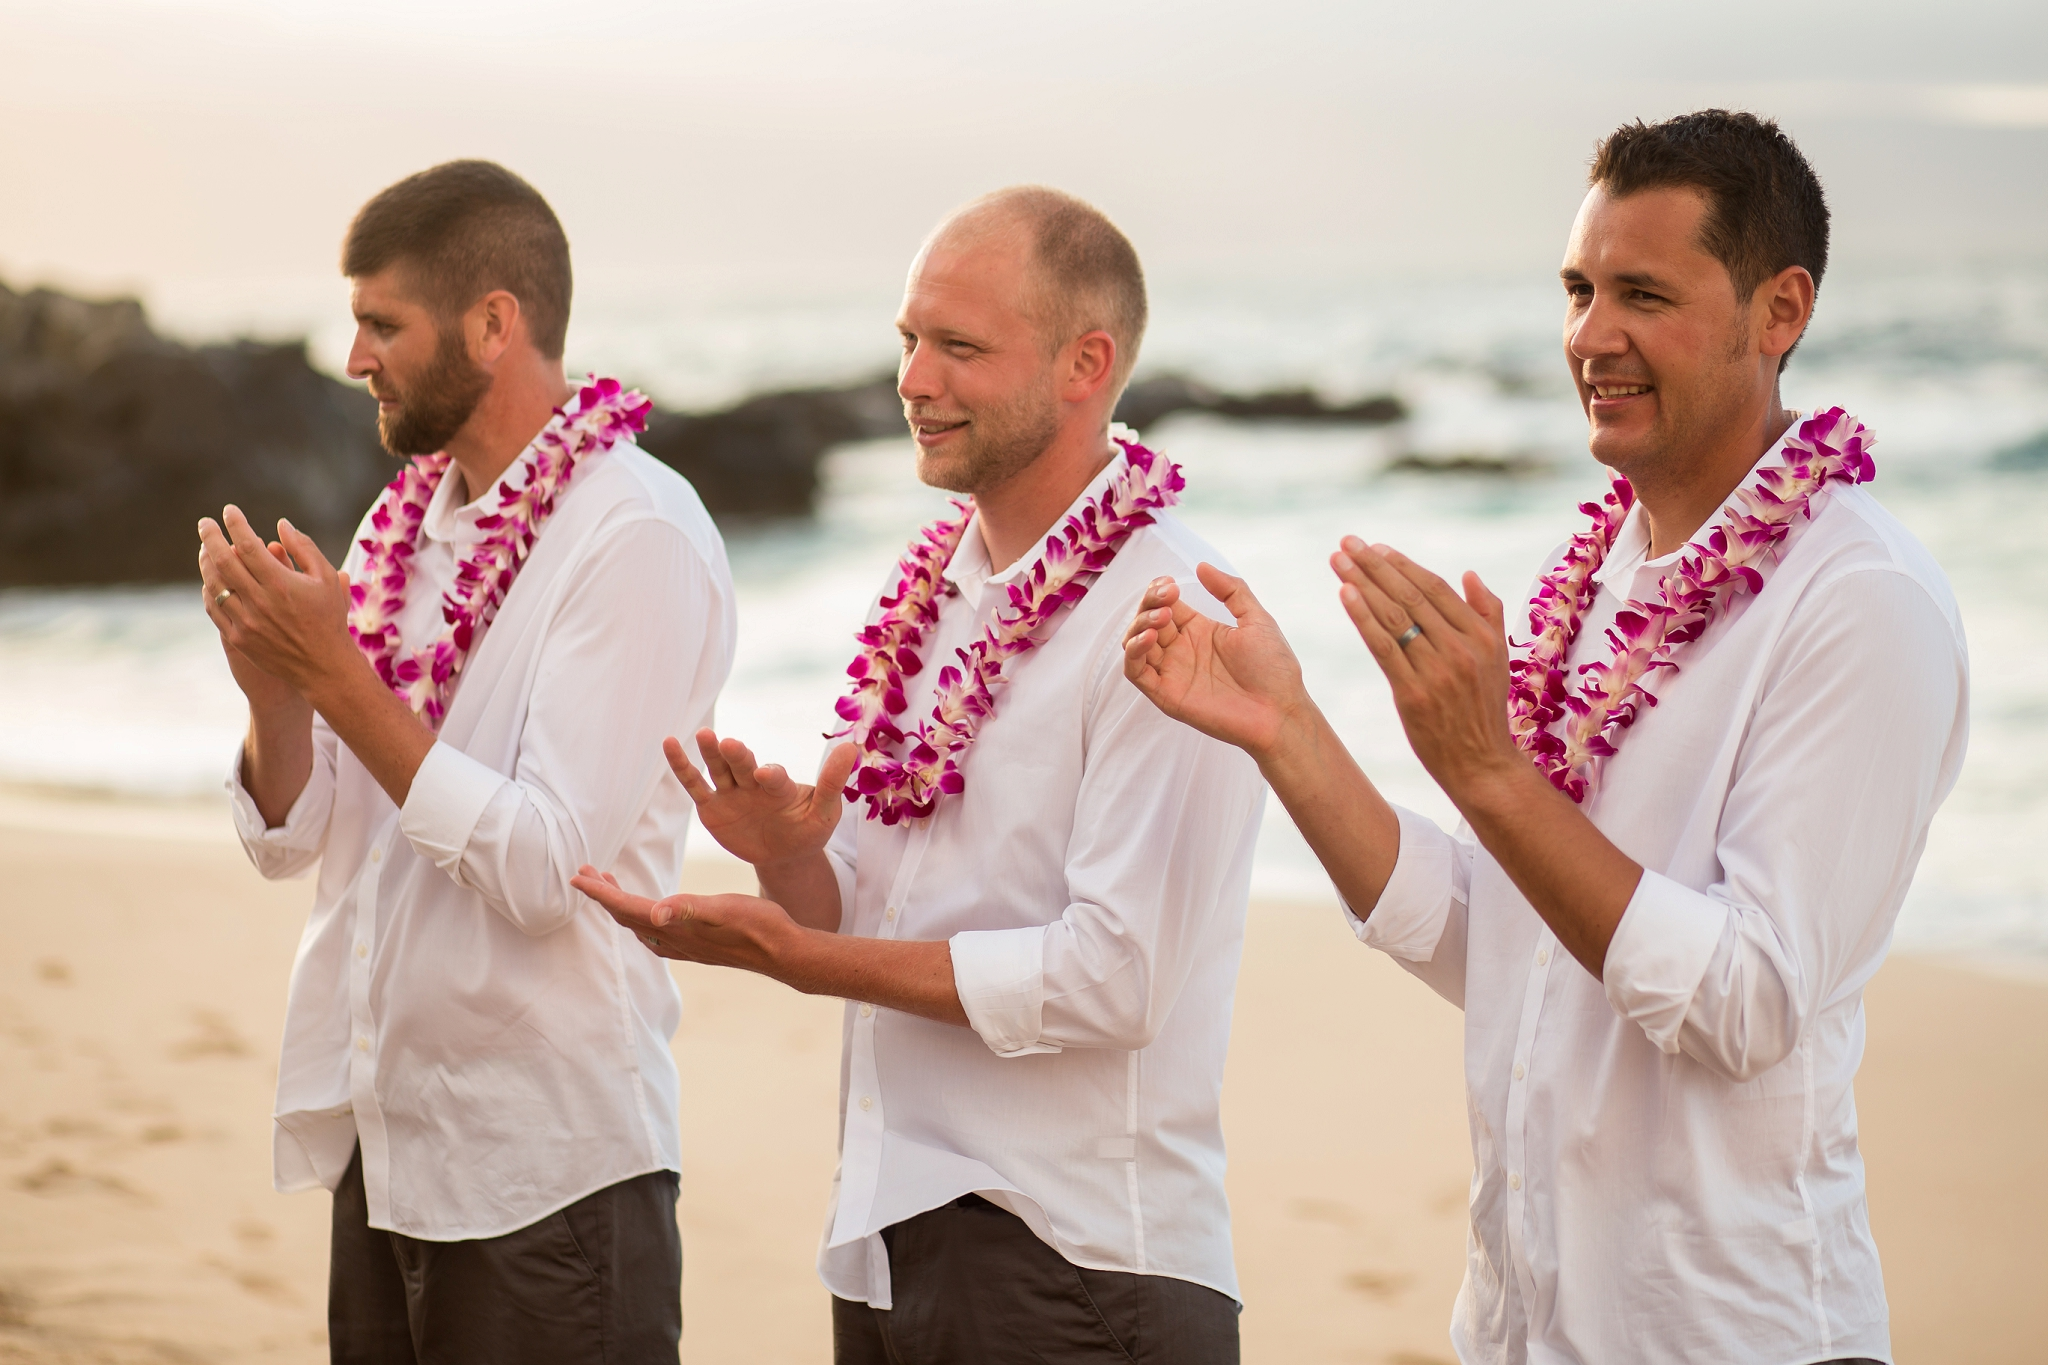 Groomsmen_hawaii_wedding_photographer.jpg